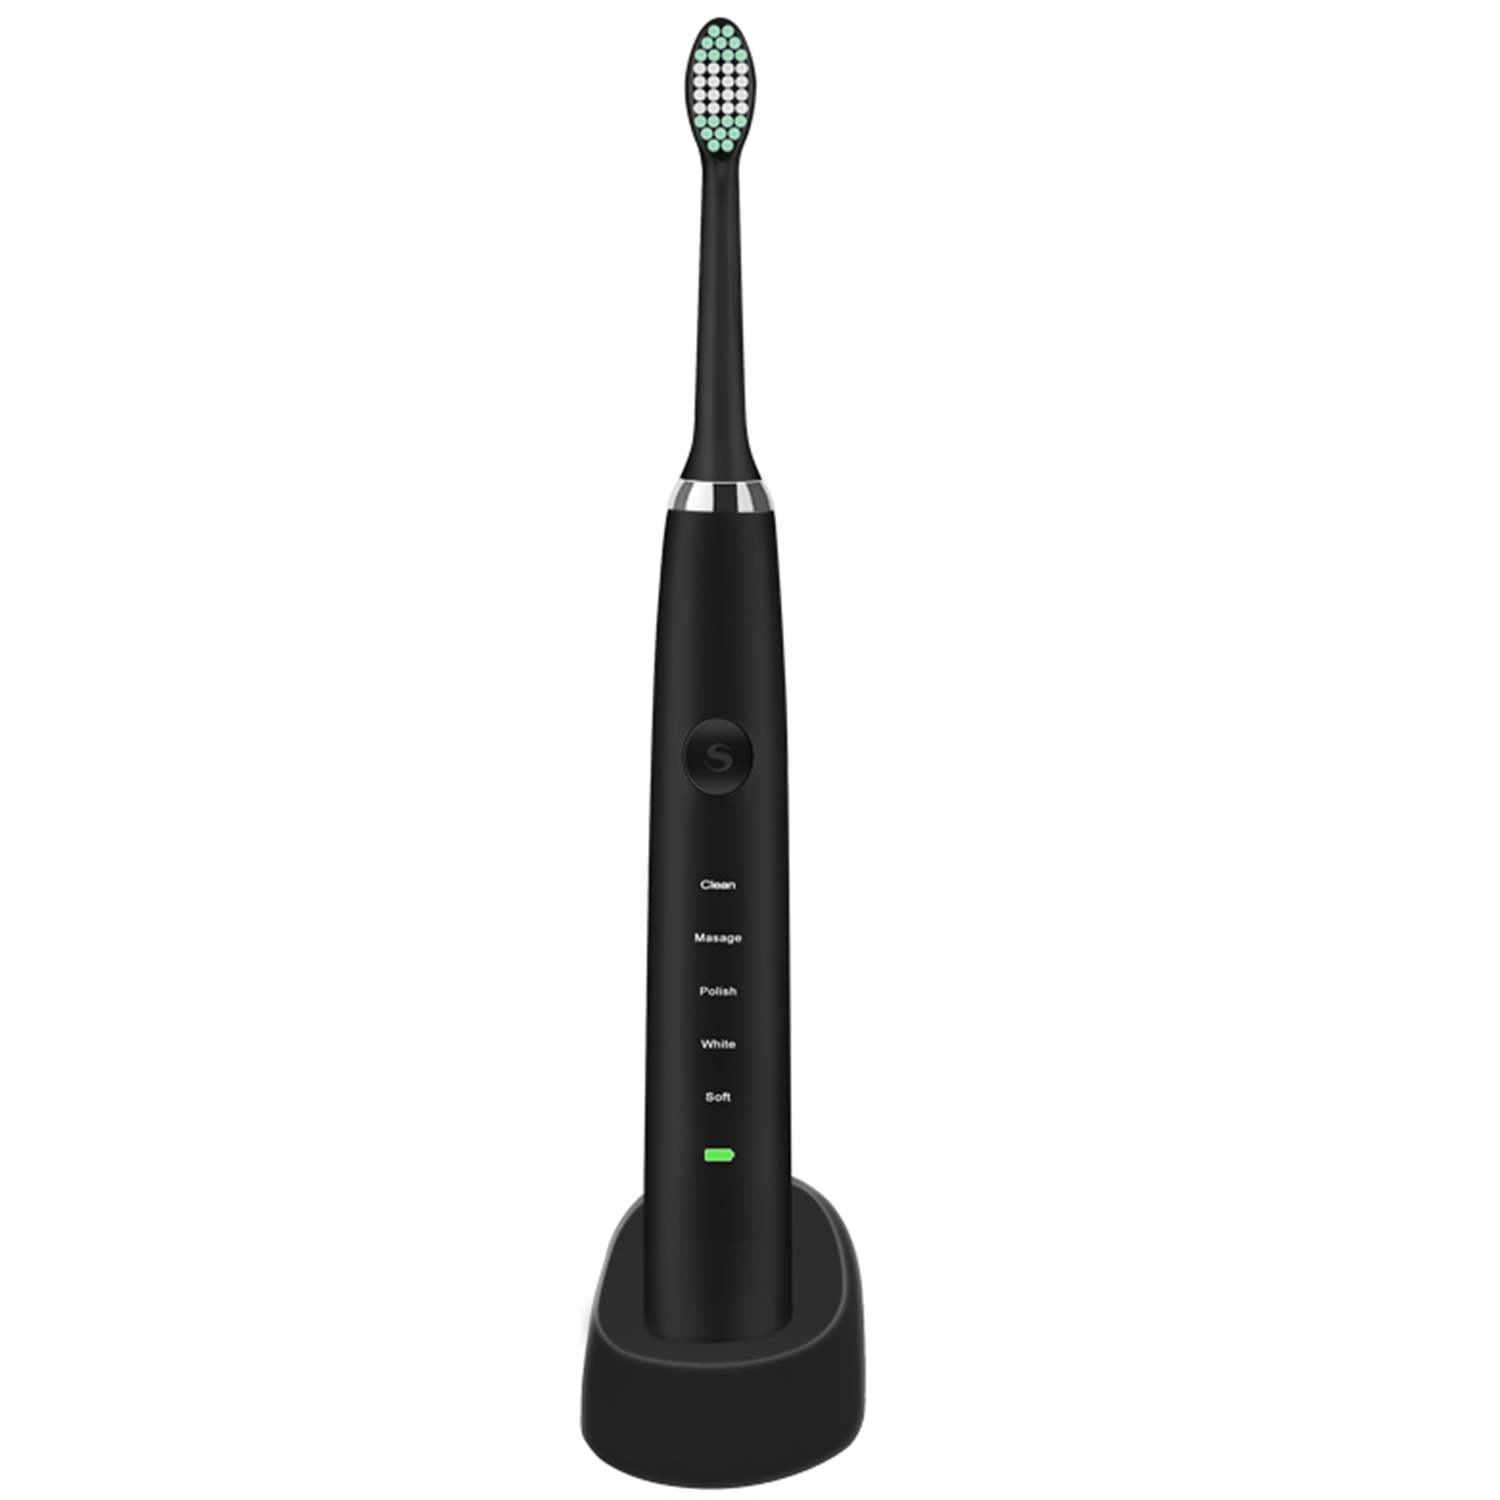 Retemporel Electric Toothbrush Rechargeable Sonic Toothbrush with 5 Optional Modes Waterproof 2 Replacement Heads Black soocas x3 sonic electric toothbrush